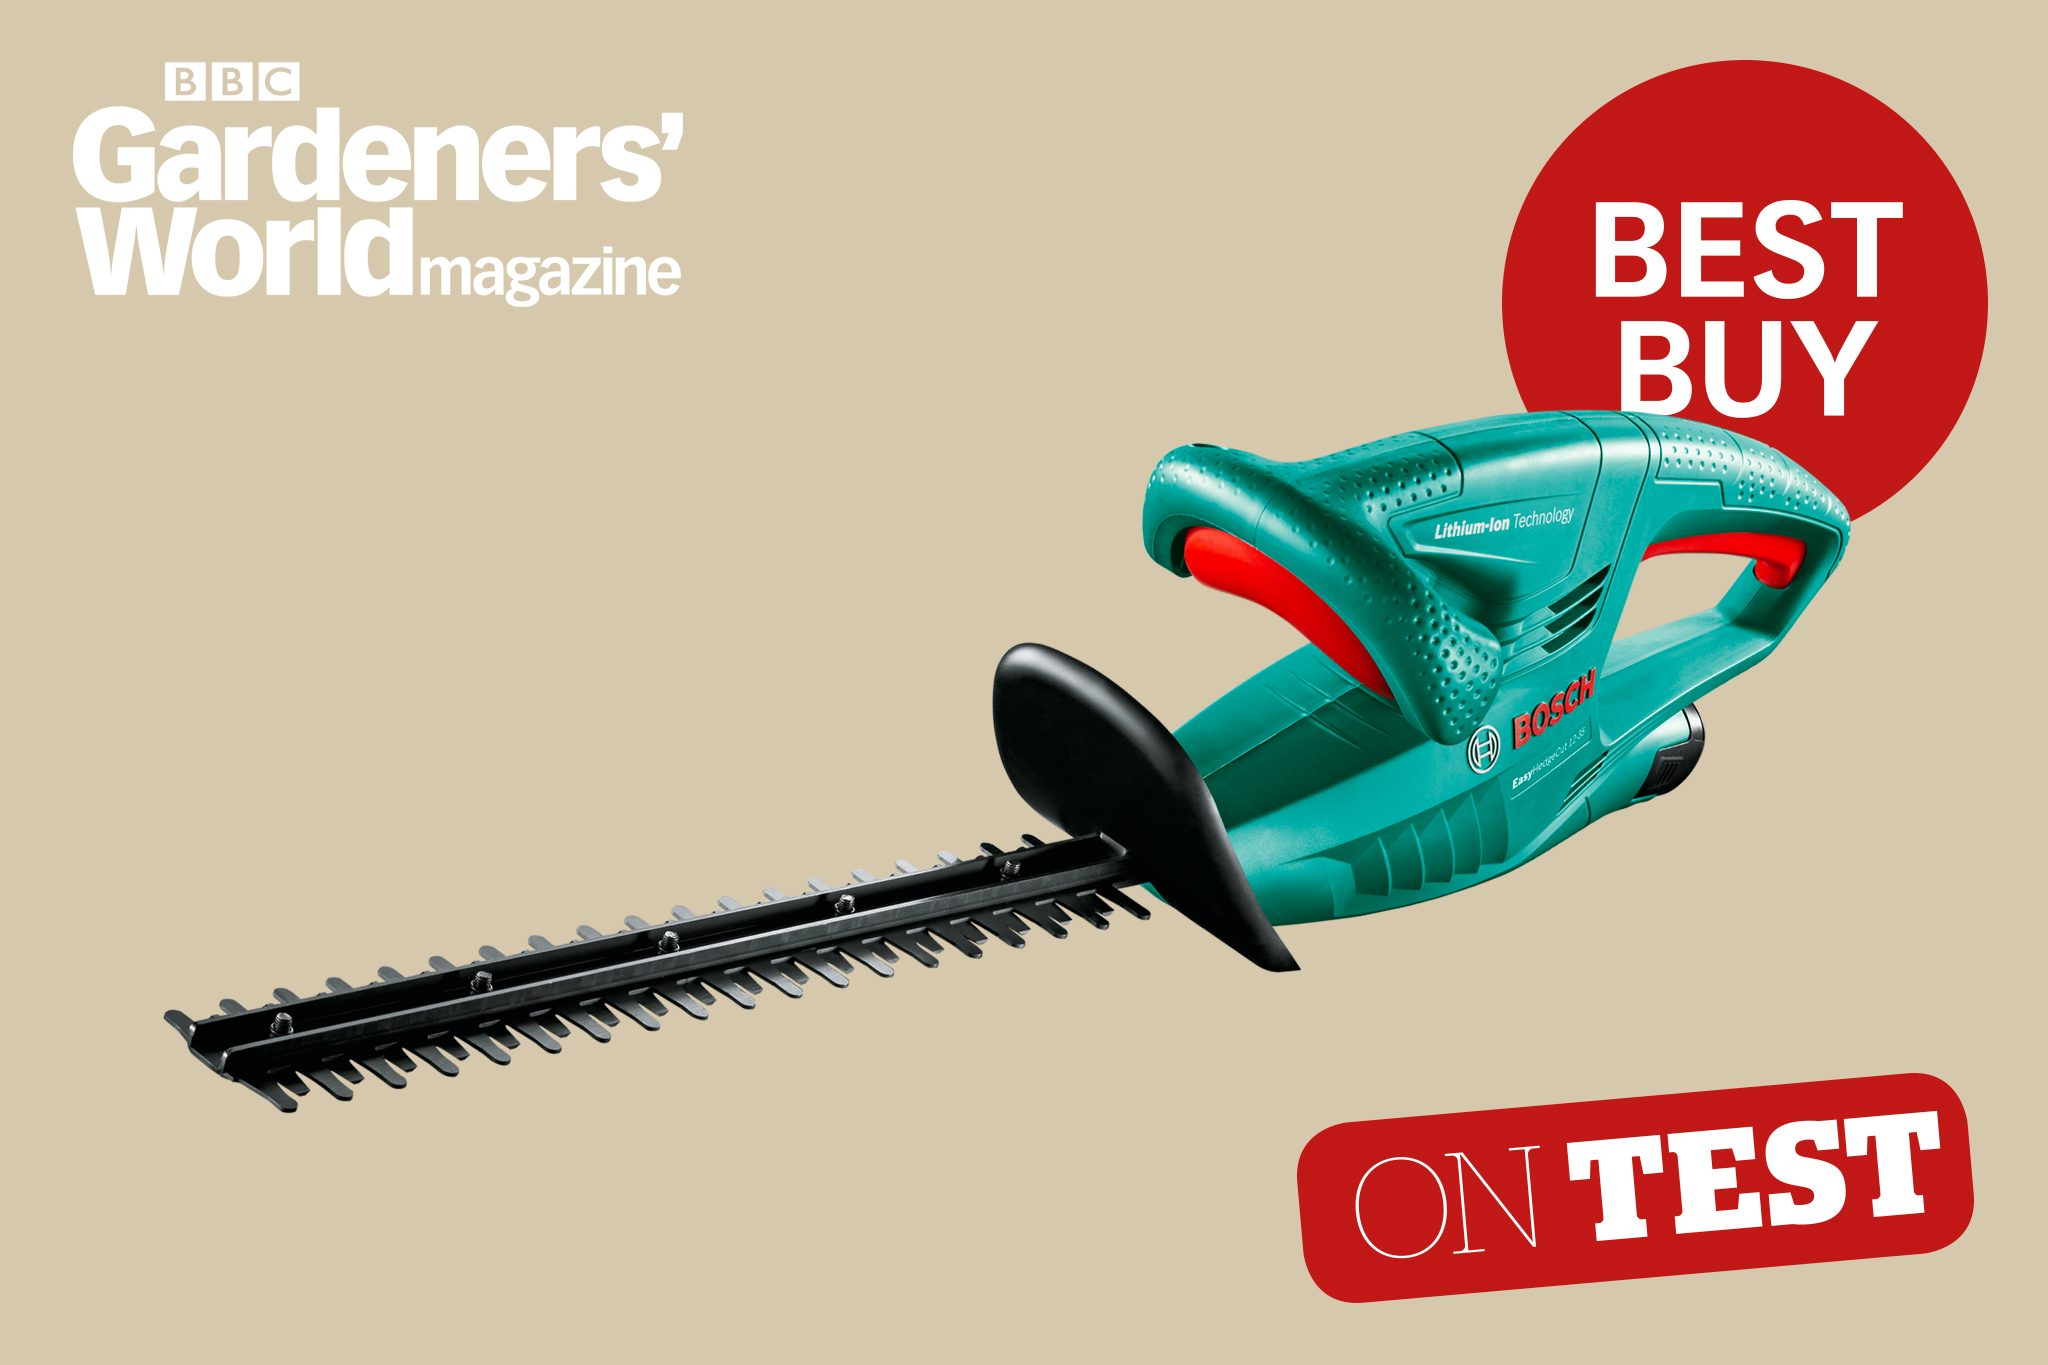 Hedge trimmer reviews , BBC Gardeners\u0027 World Magazine